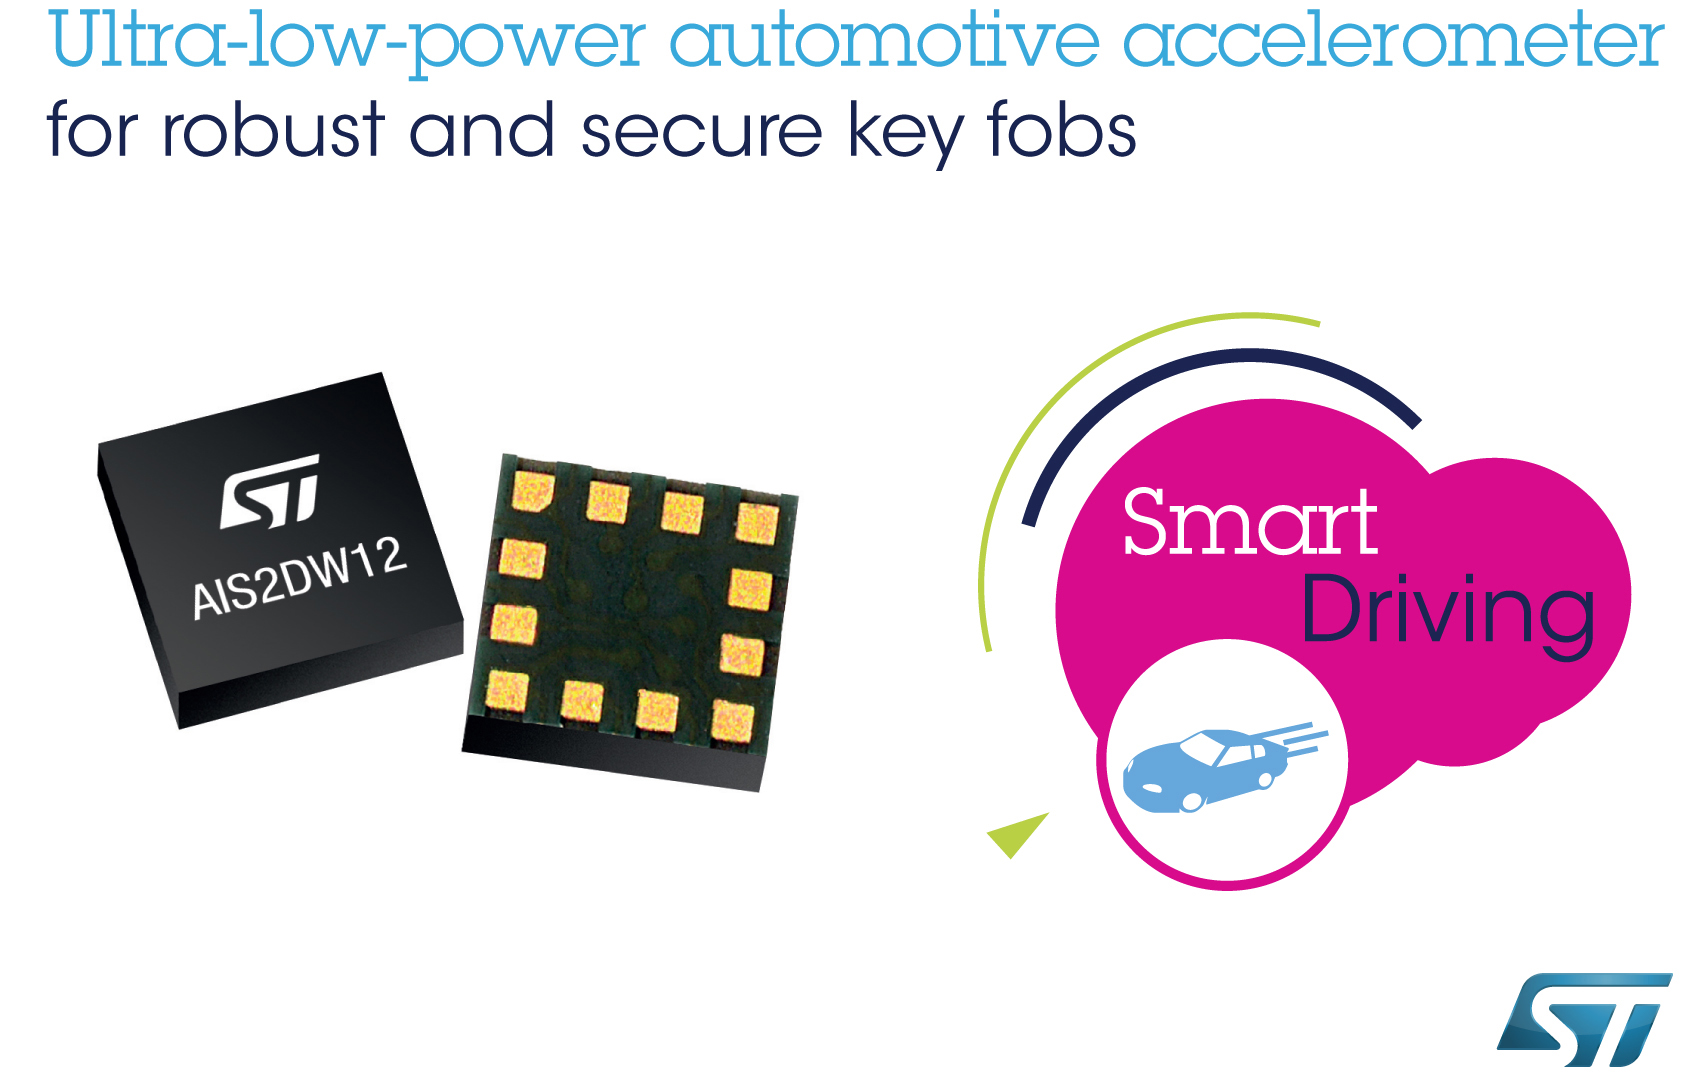 Robust, Low-Power Automotive Accelerometer from